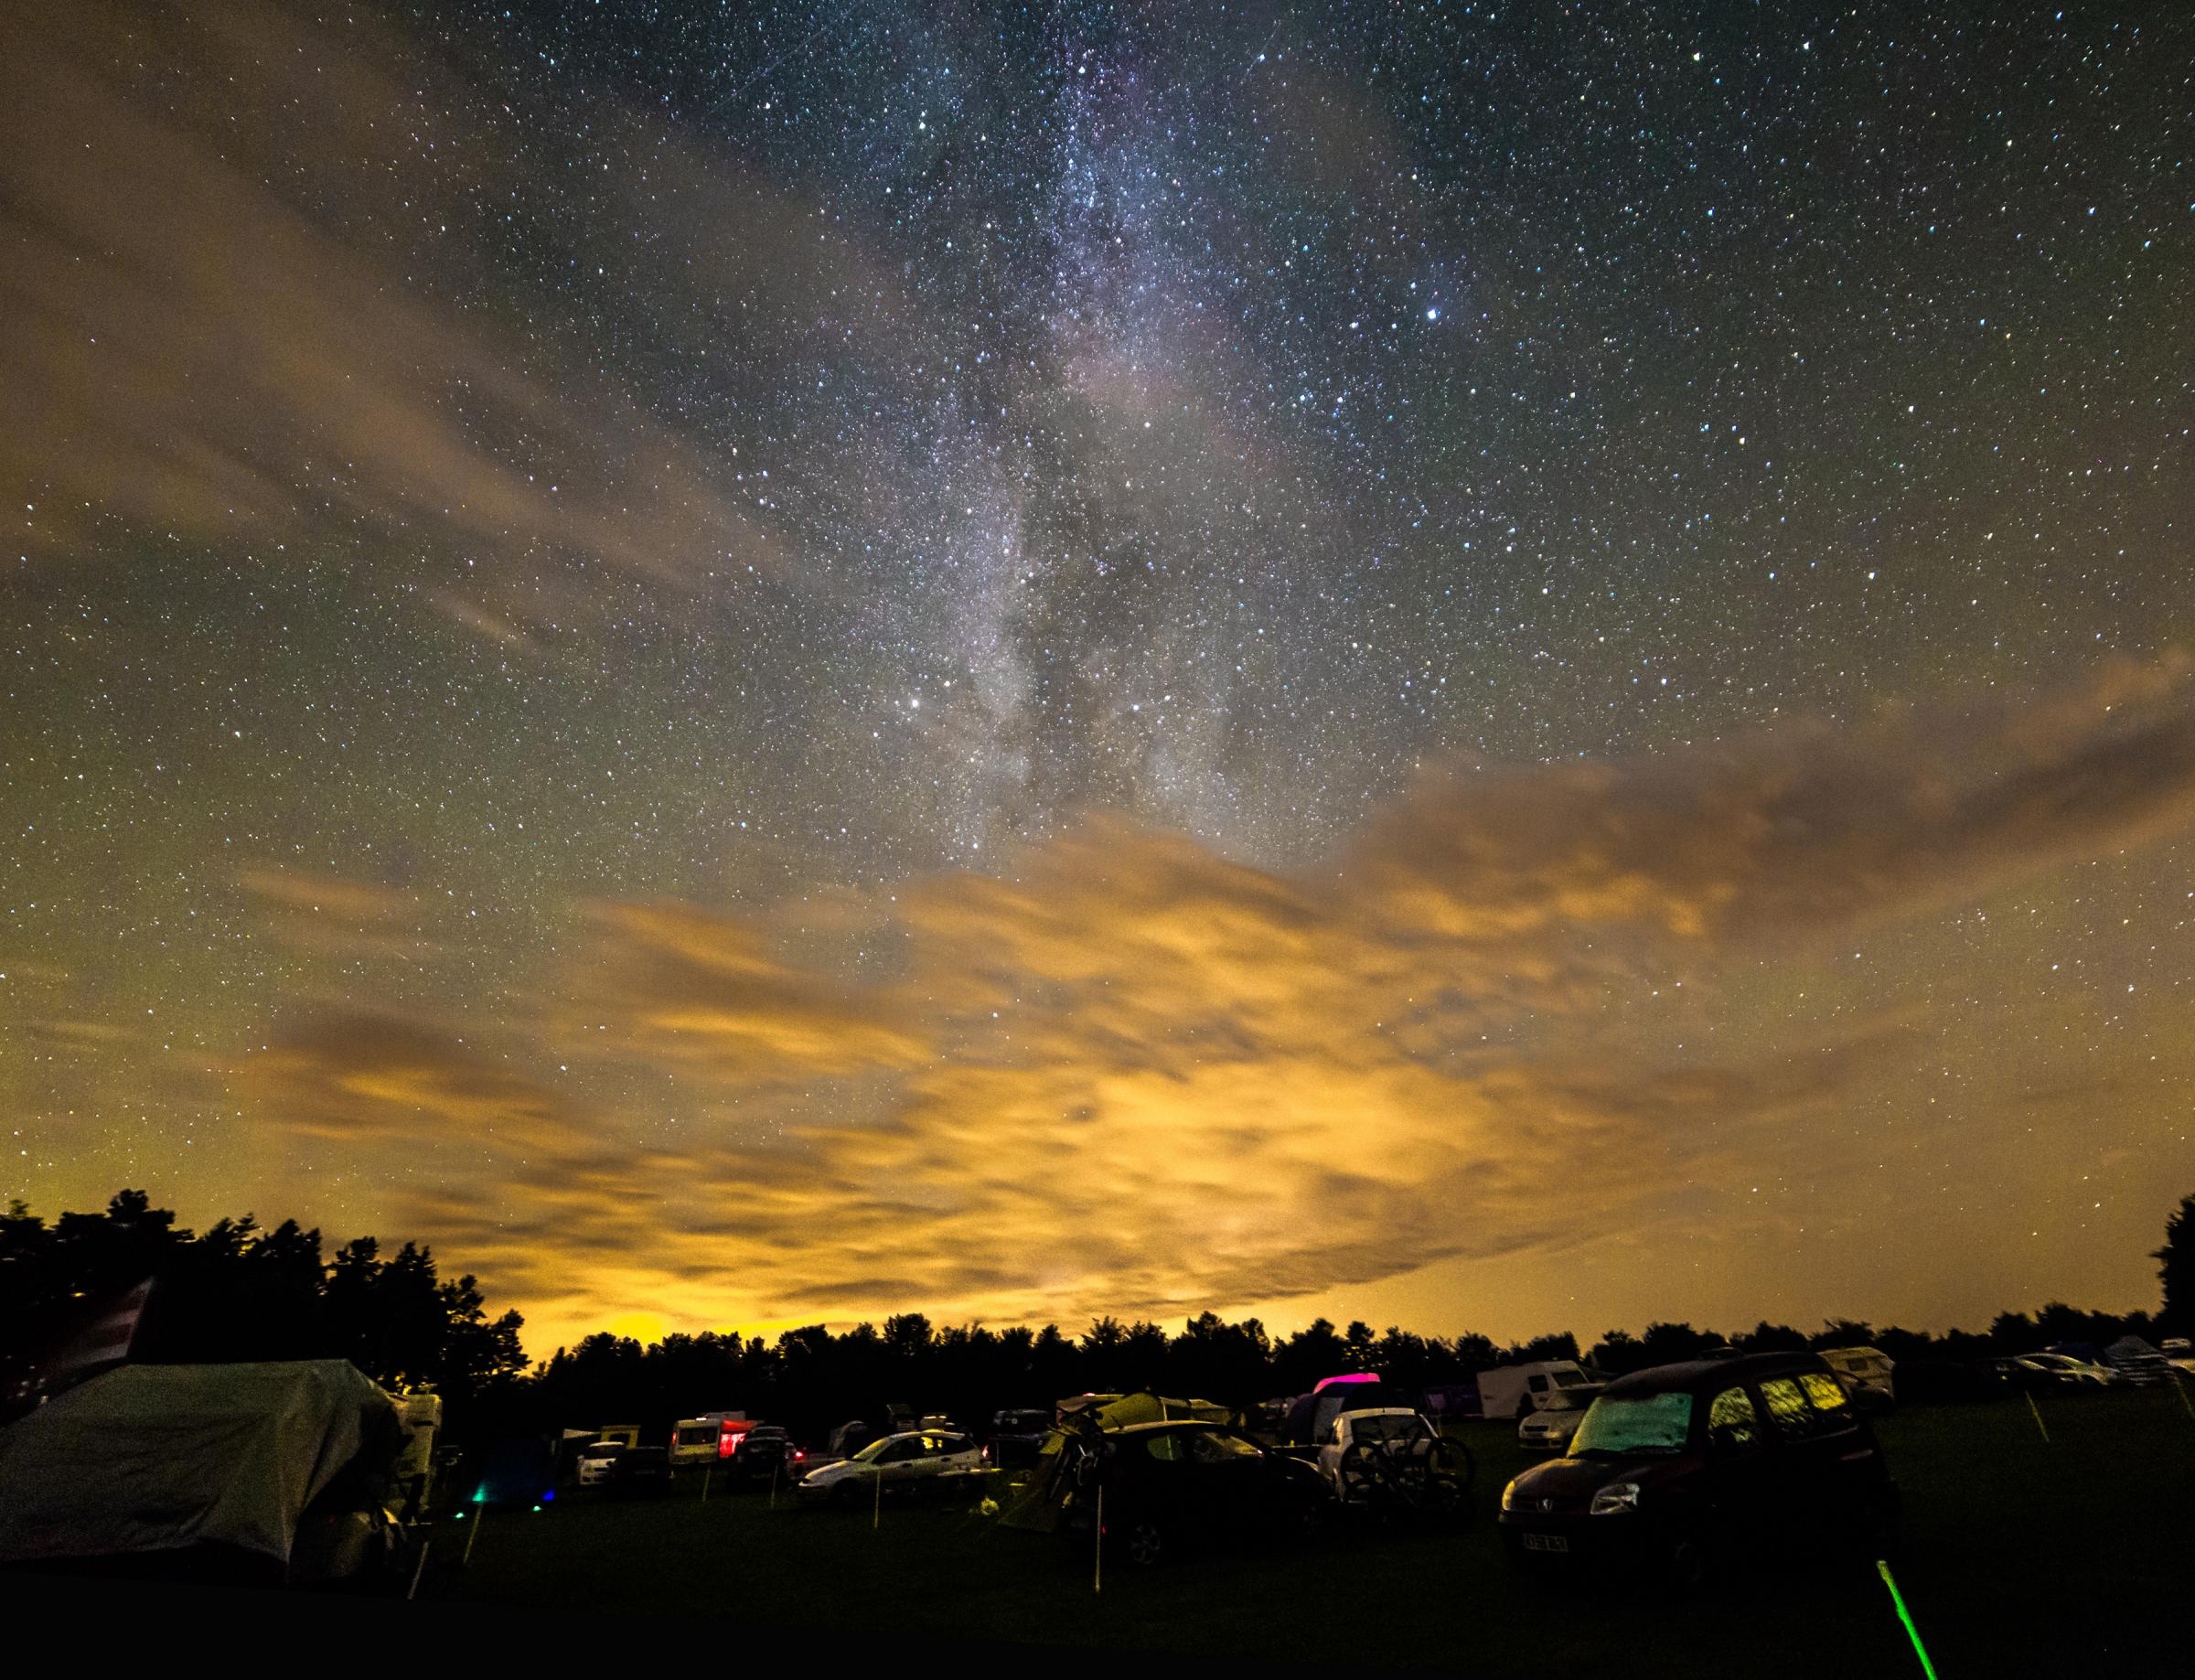 Starry, starry nights - protect our dark skies